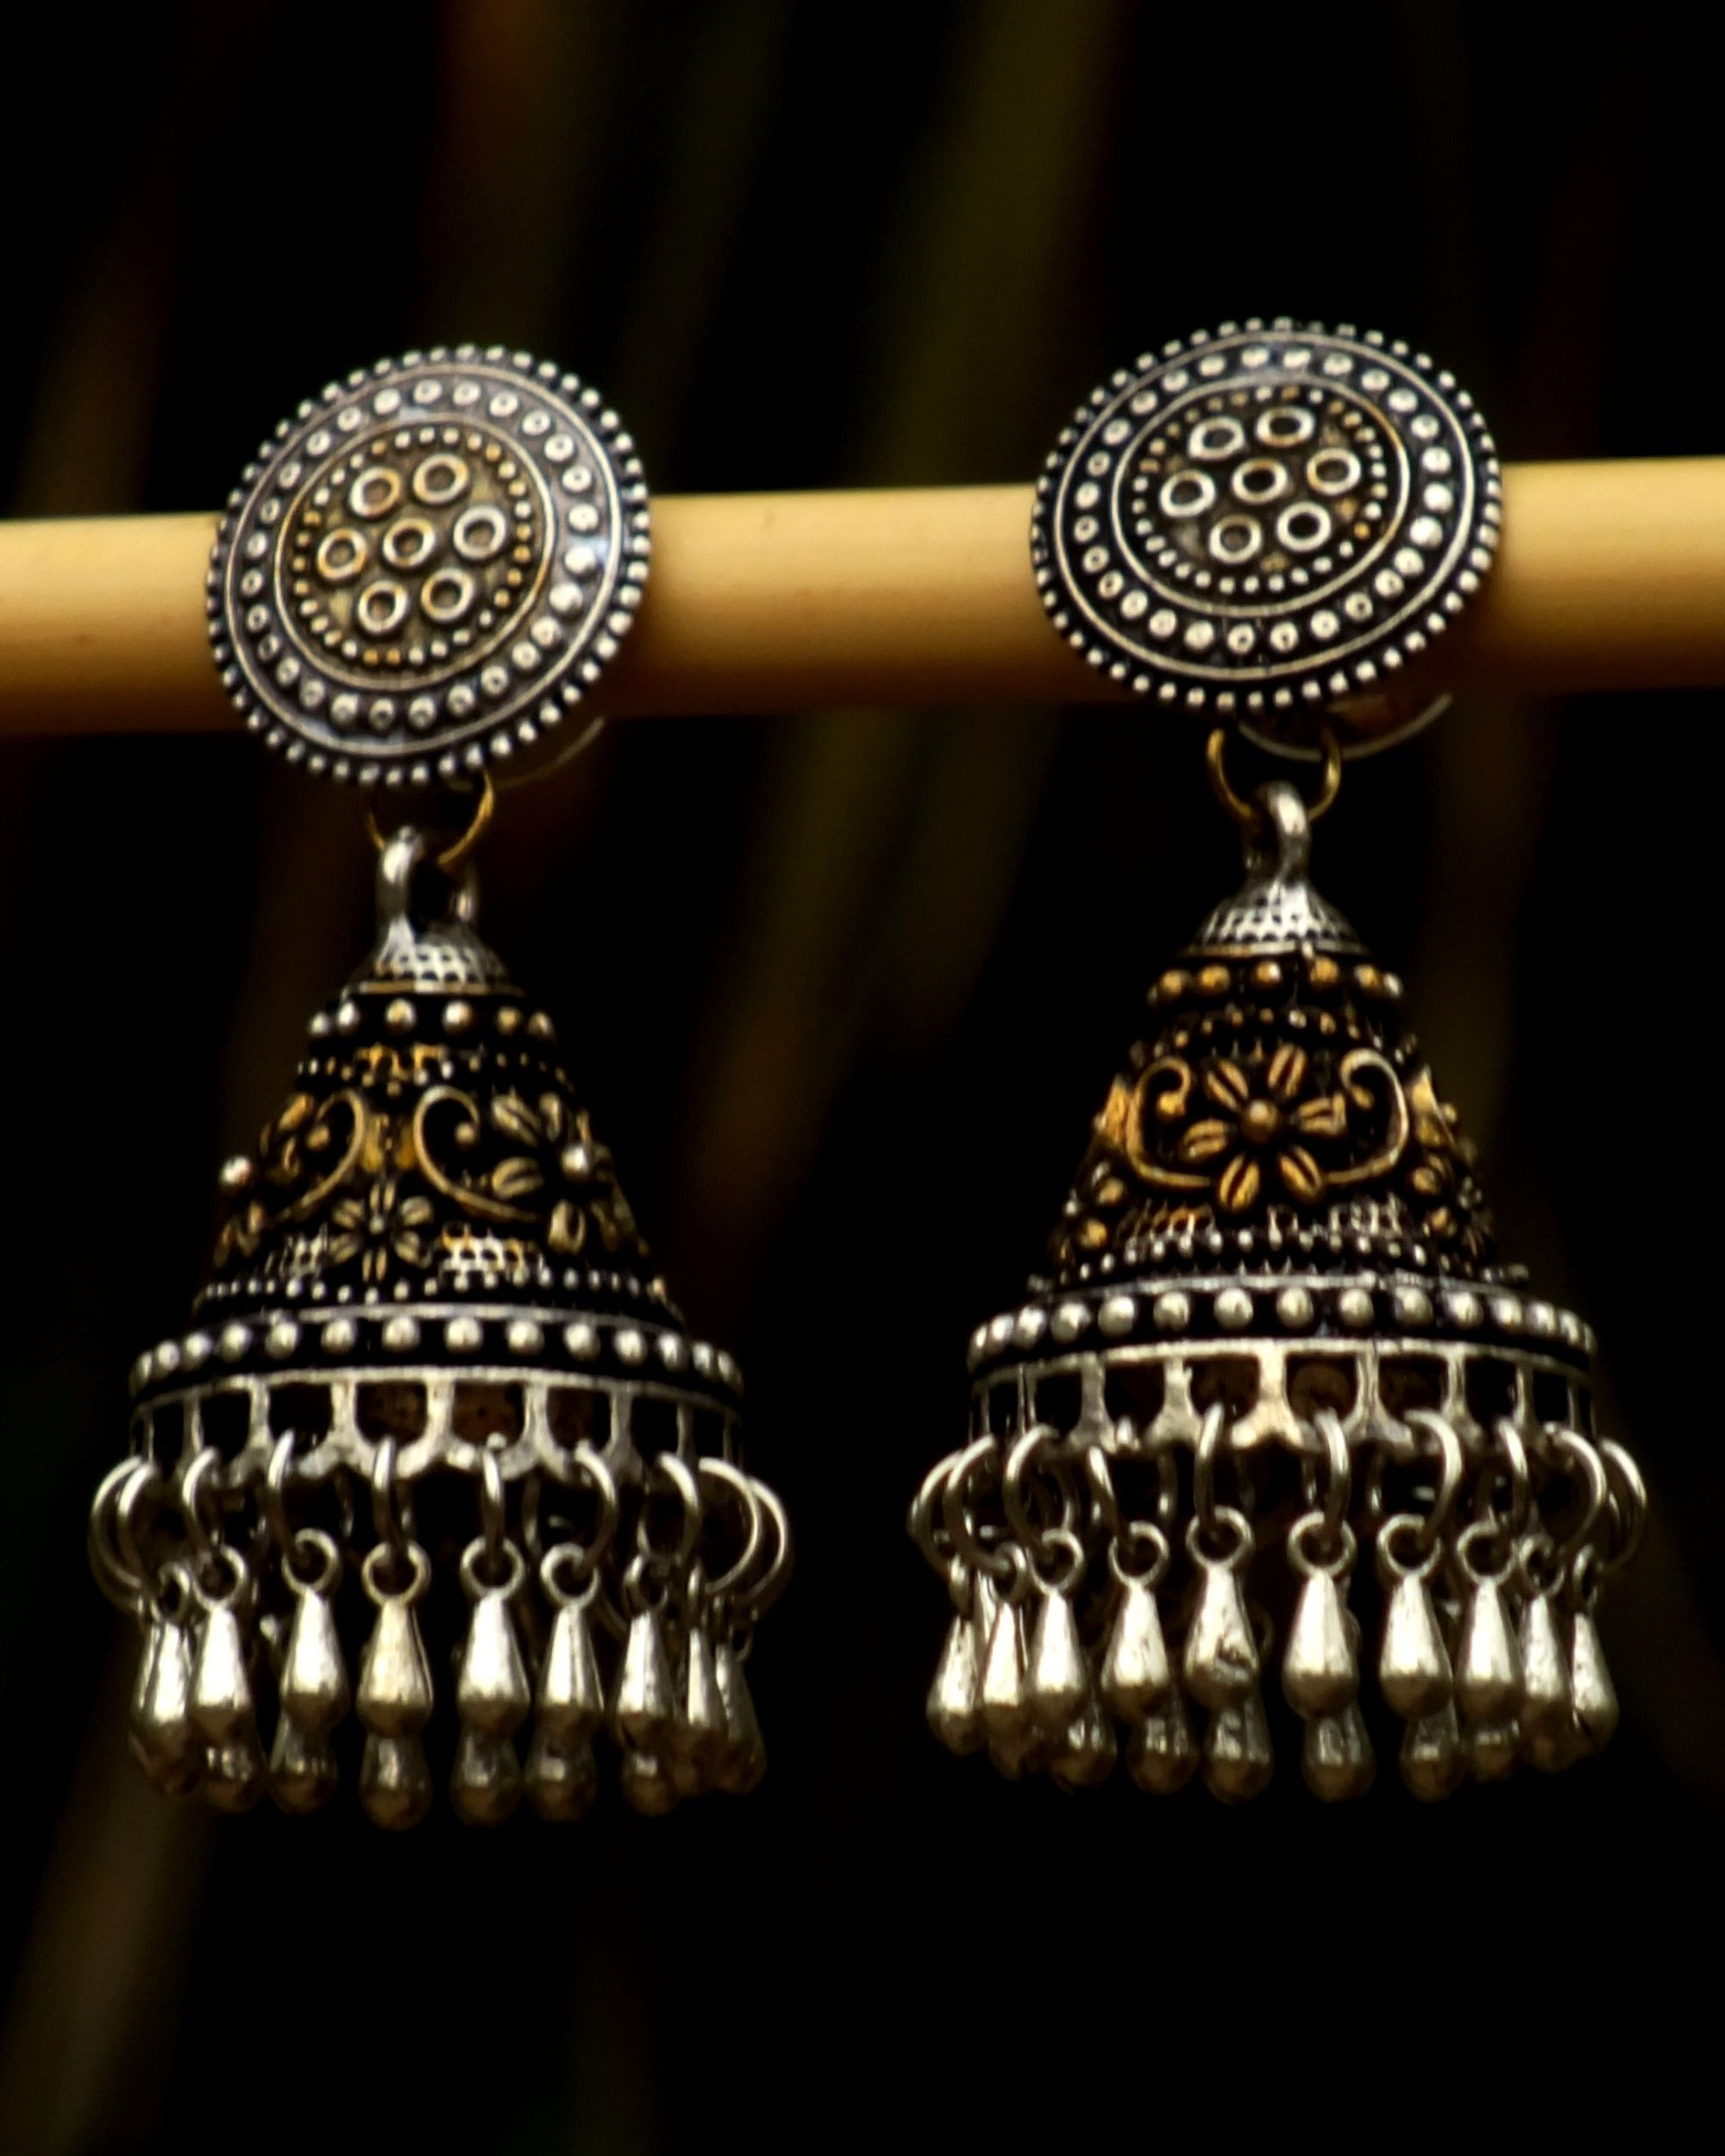 Intricate gold and silver oxidized earrings